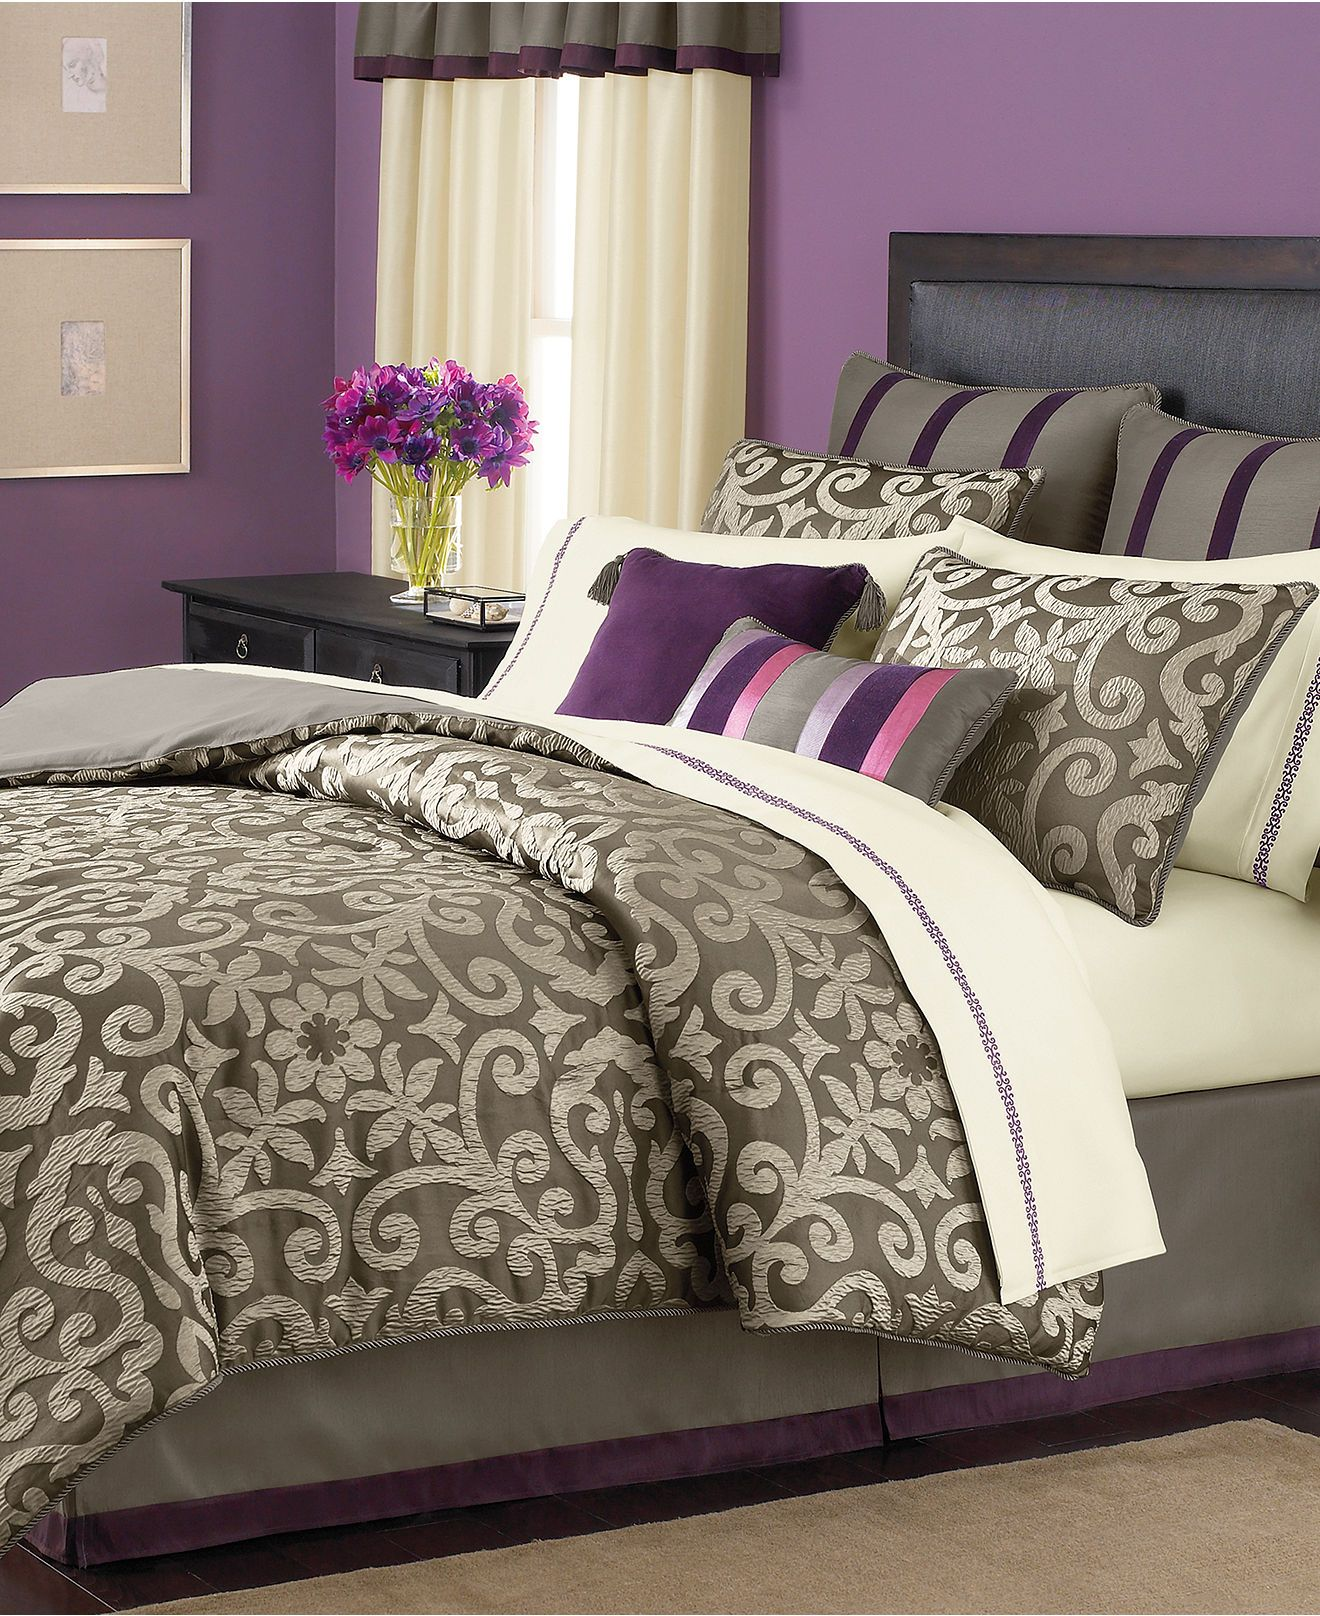 I Have A Lighter Version Of Purple Walls In Our Bedroom Love This Bedding Set Maybe More Light Brown